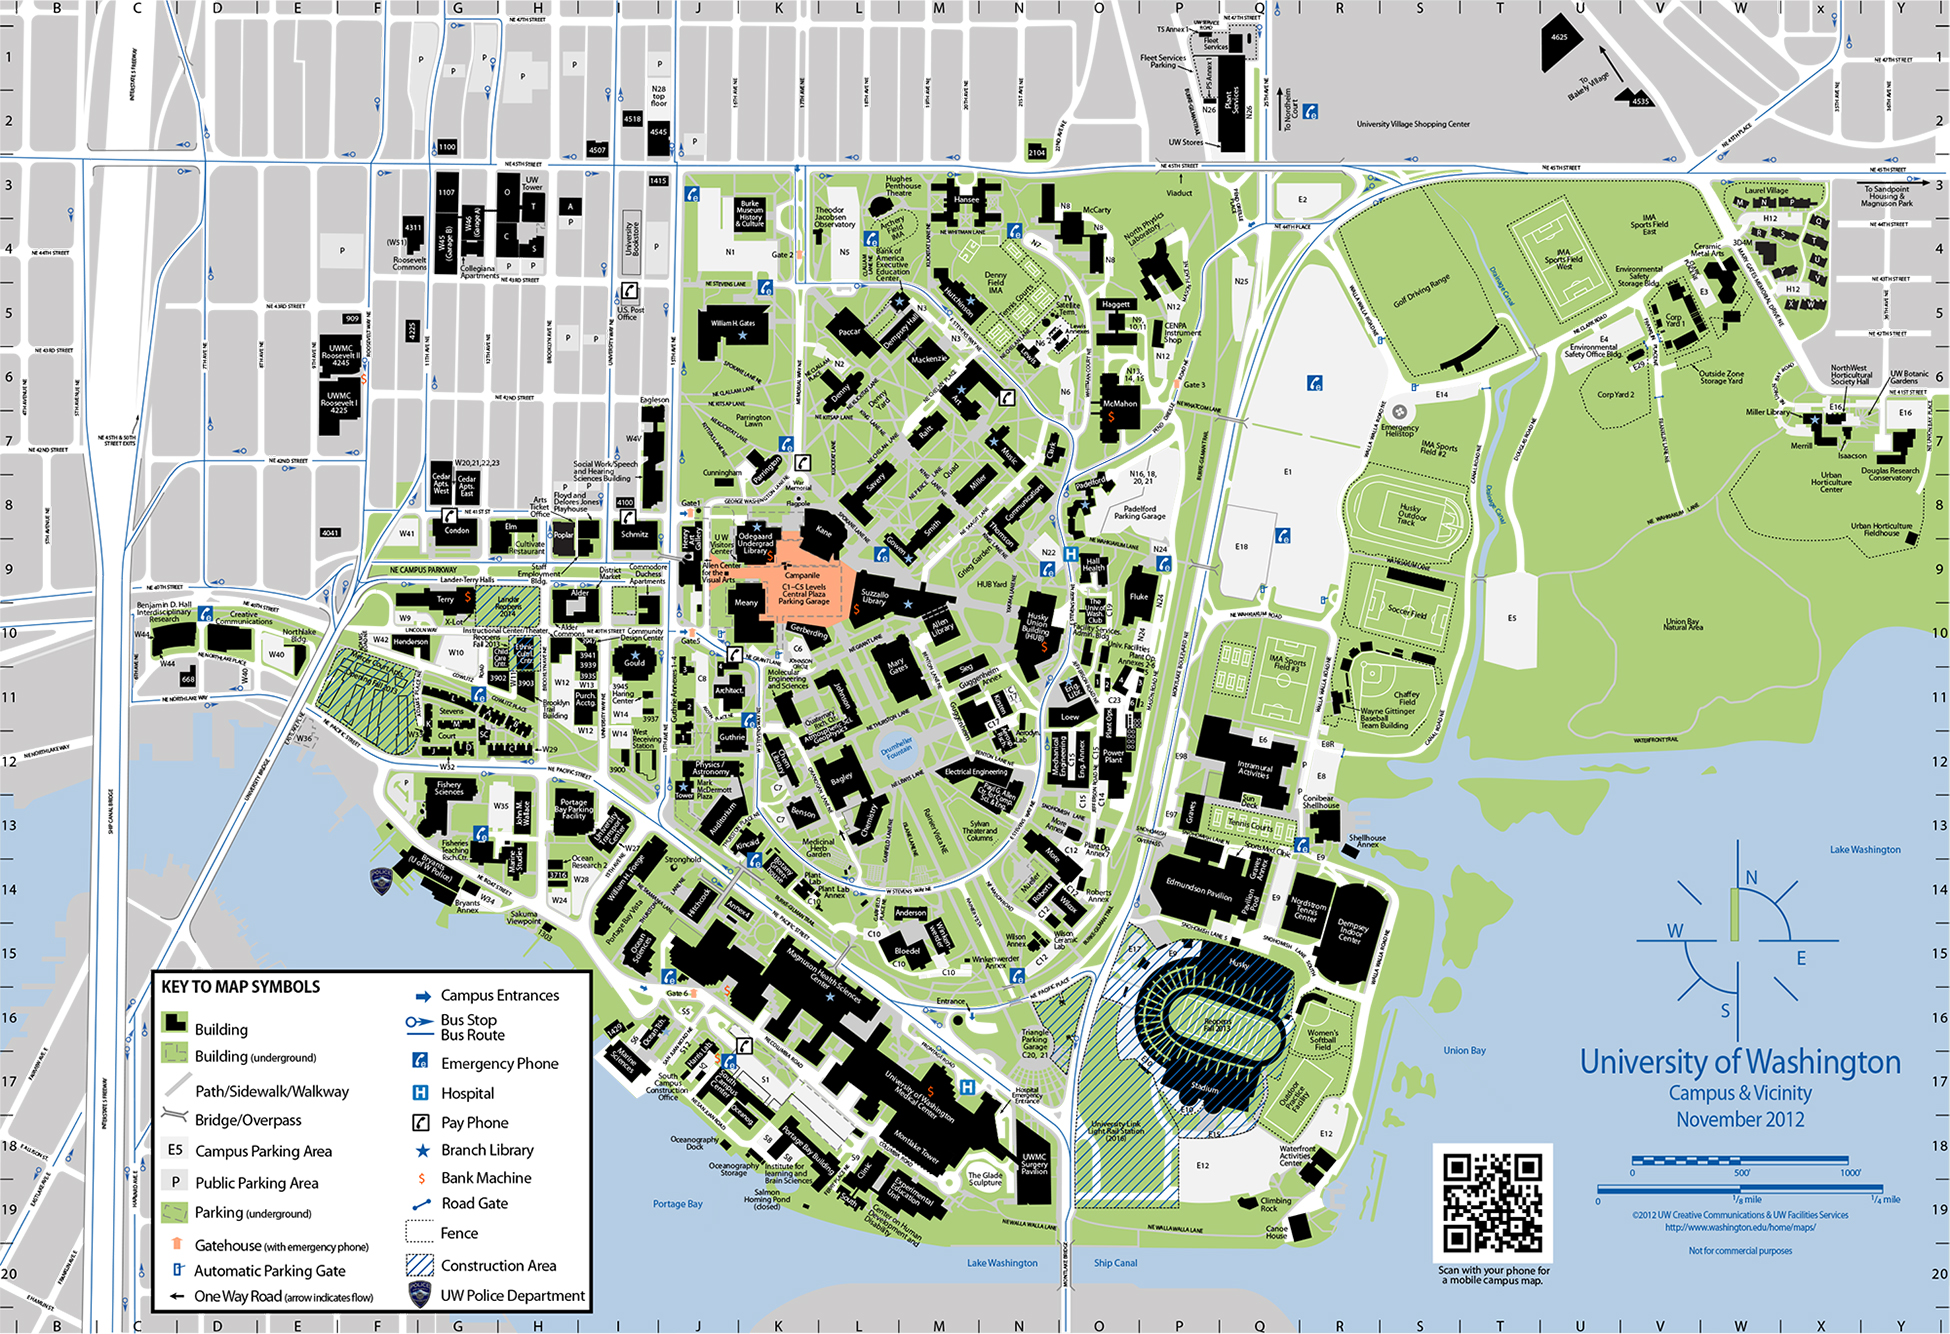 Campus Map Uw Directions and Parking | OMA&D Welcome Daze